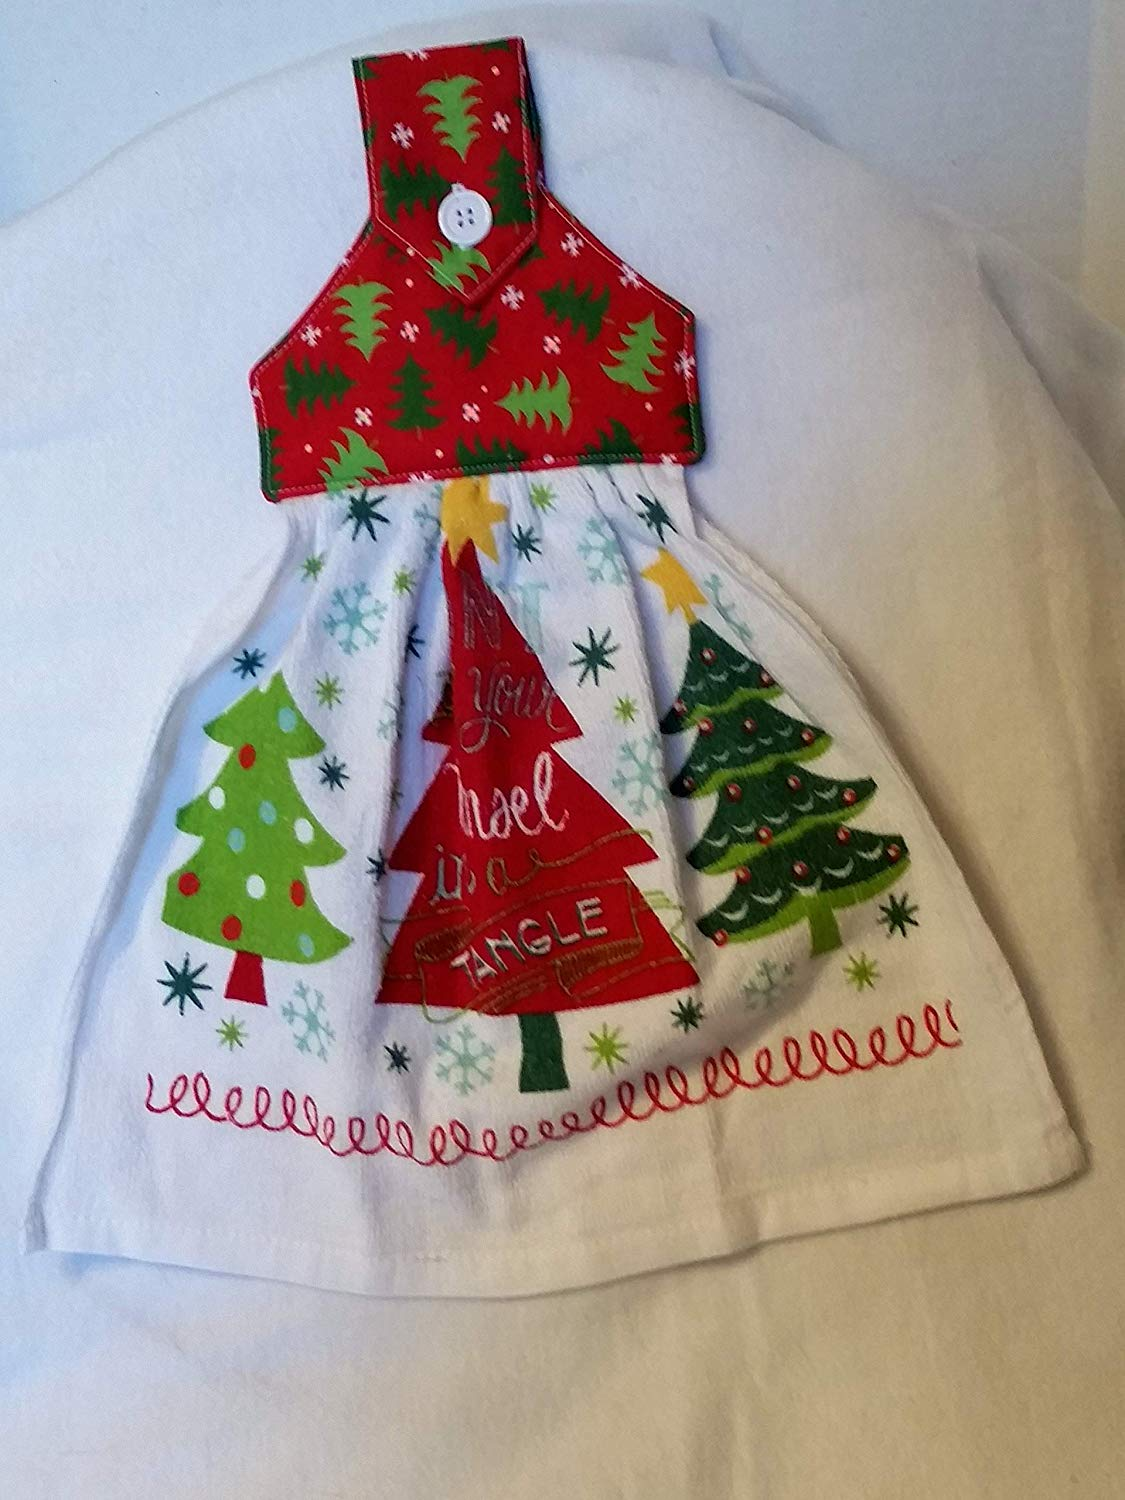 Christmas Kitchen towel with Christmas trees, Oven Door towel with Button Closure, 400